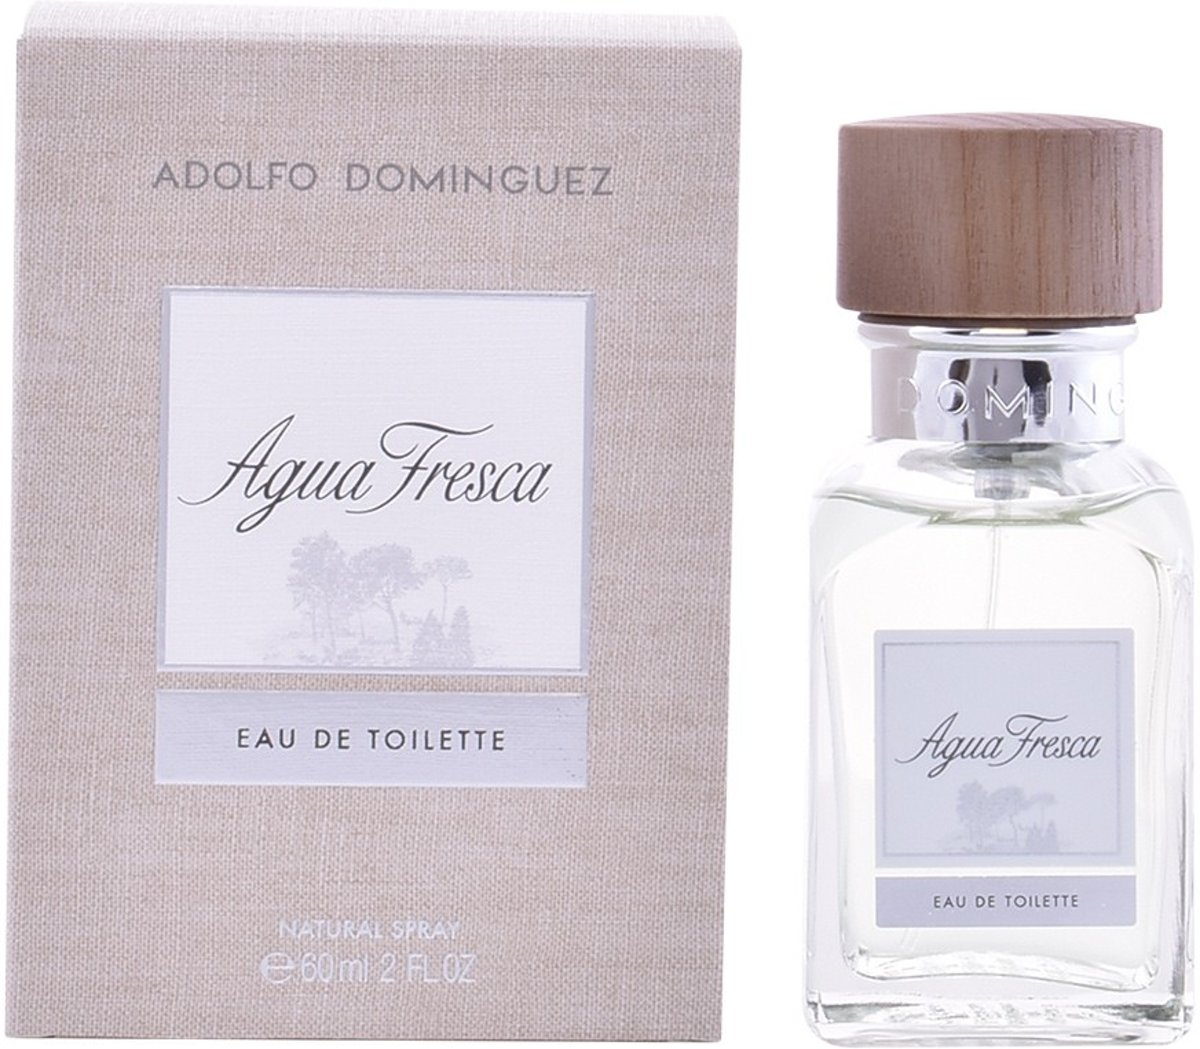 MULTI BUNDEL 2 stuks AGUA FRESCA Eau de Toilette Spray 60 ml